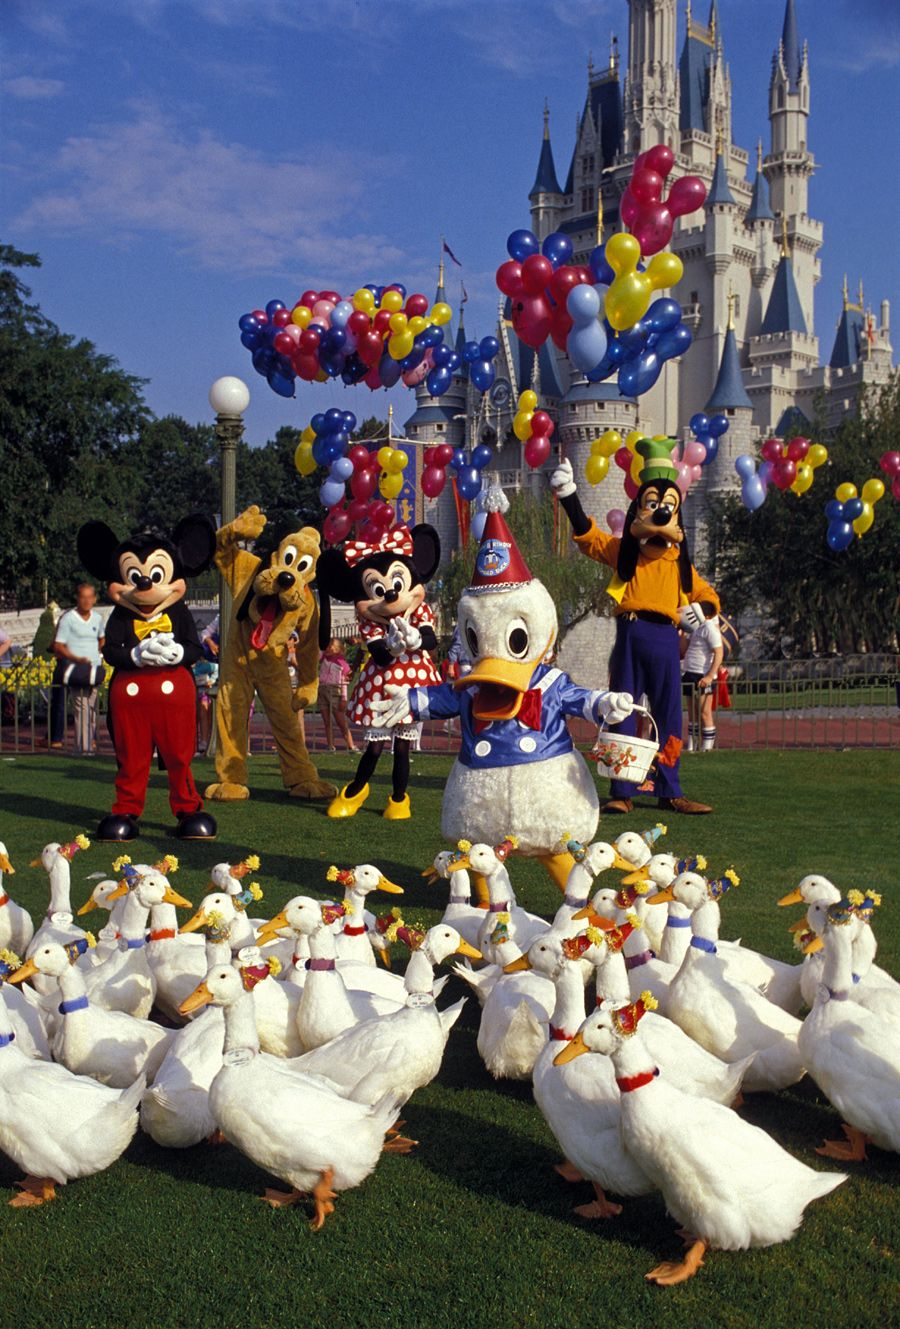 Donald's birthday  *OMG I LOVE THIS, I LOVE DONALD!!!!!*